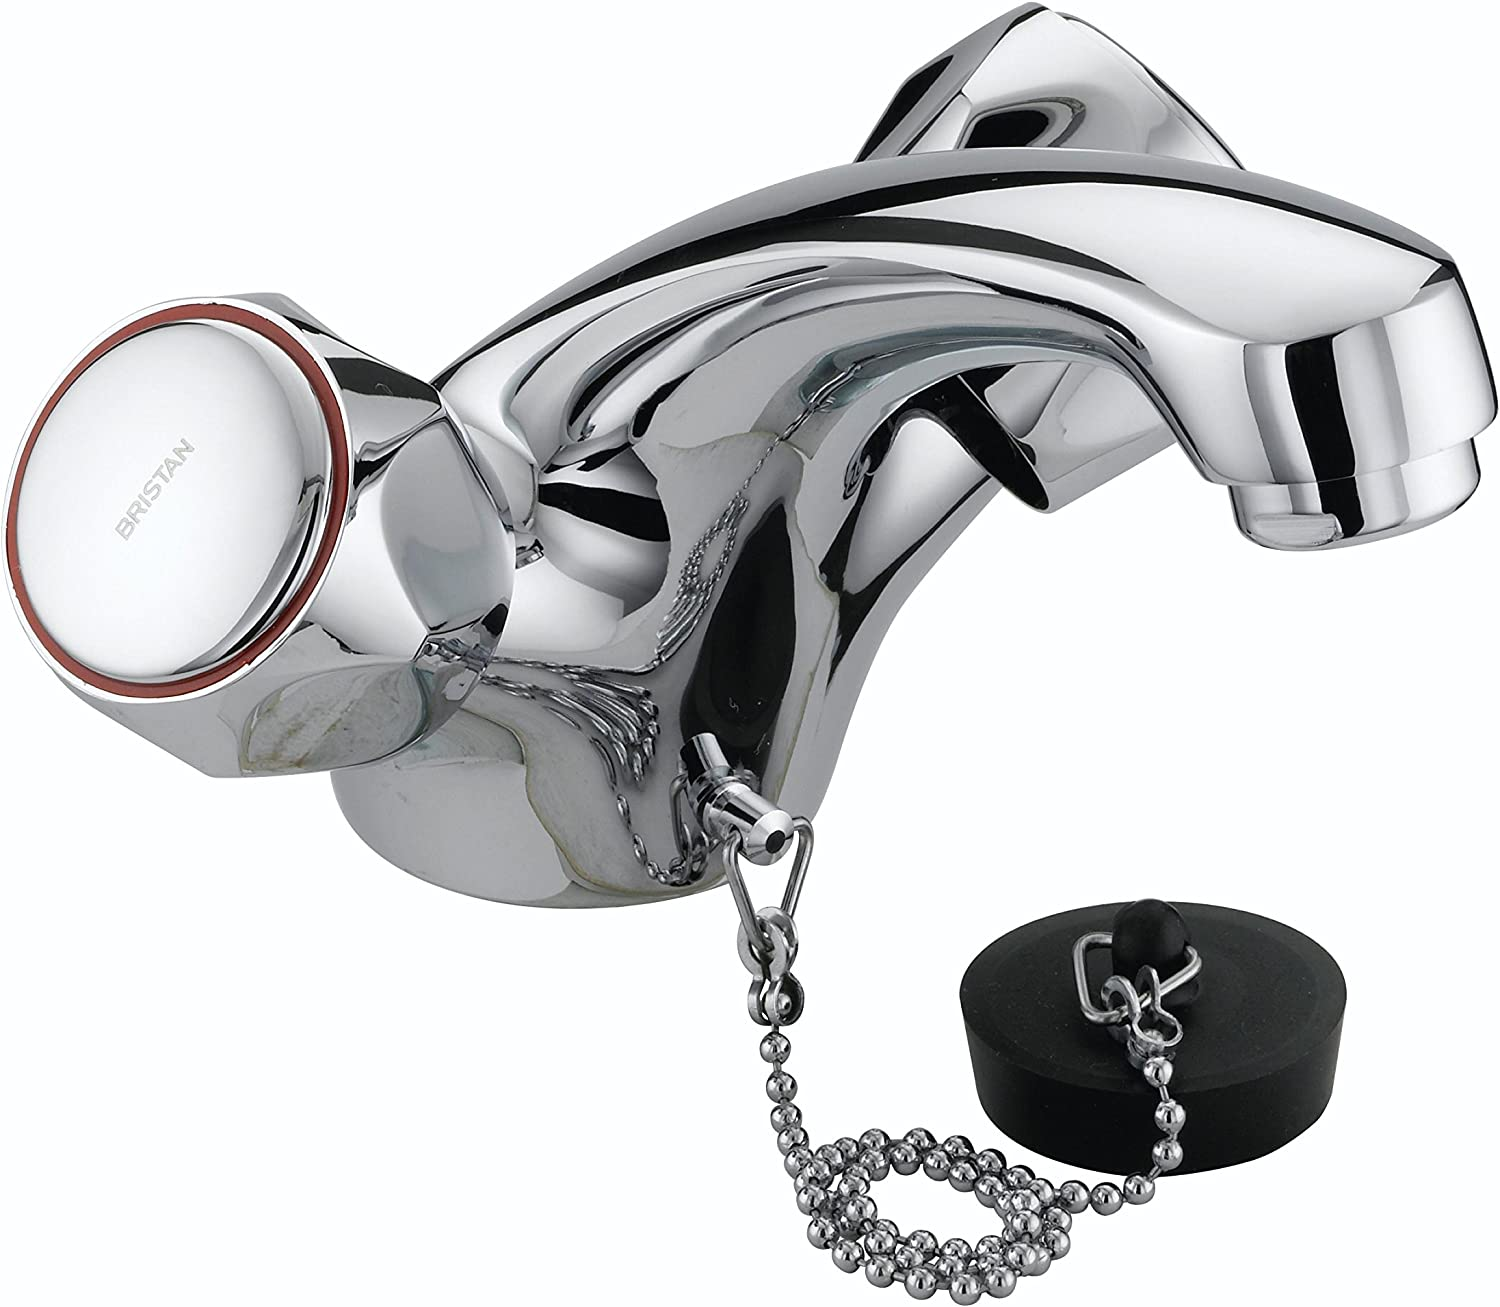 Bristan VAC BASNW C MT Club Mono Basin Mixer without Waste and Metal Heads - Chrome Plated